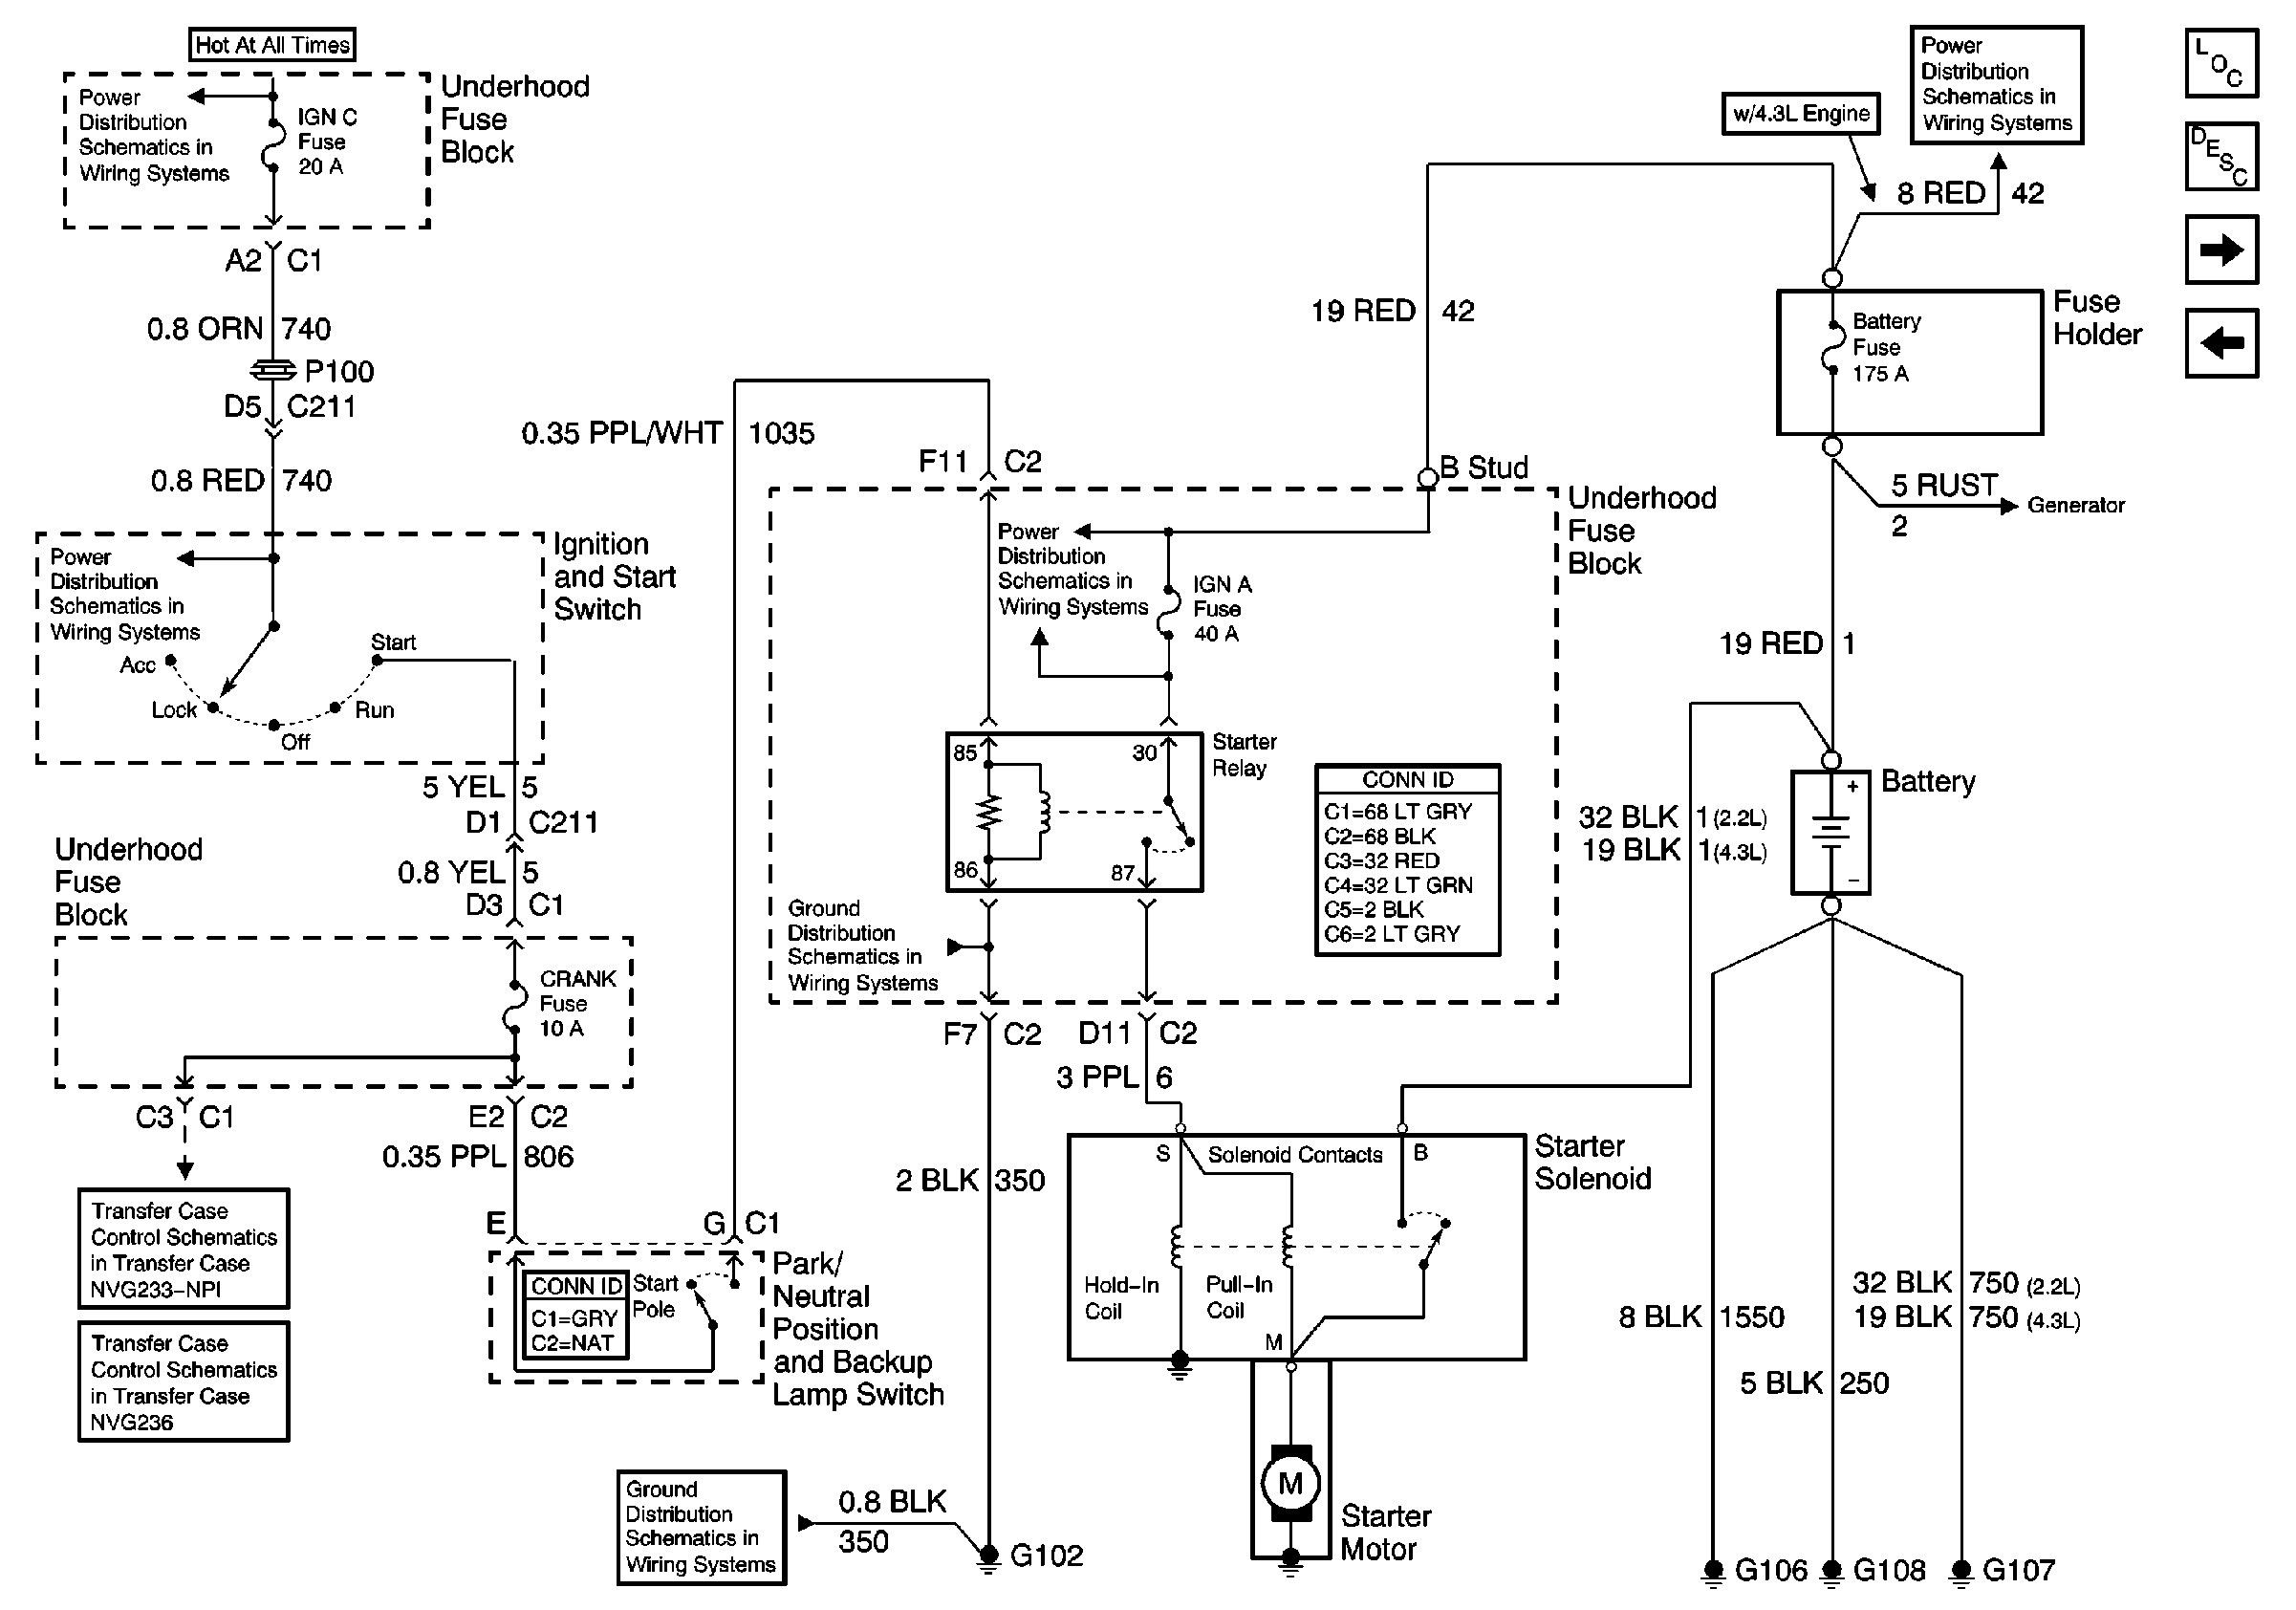 Wiring Diagram For A Awesome Wiring Diagram Excelent Wiring Diagram For A Starter Solenoid Image